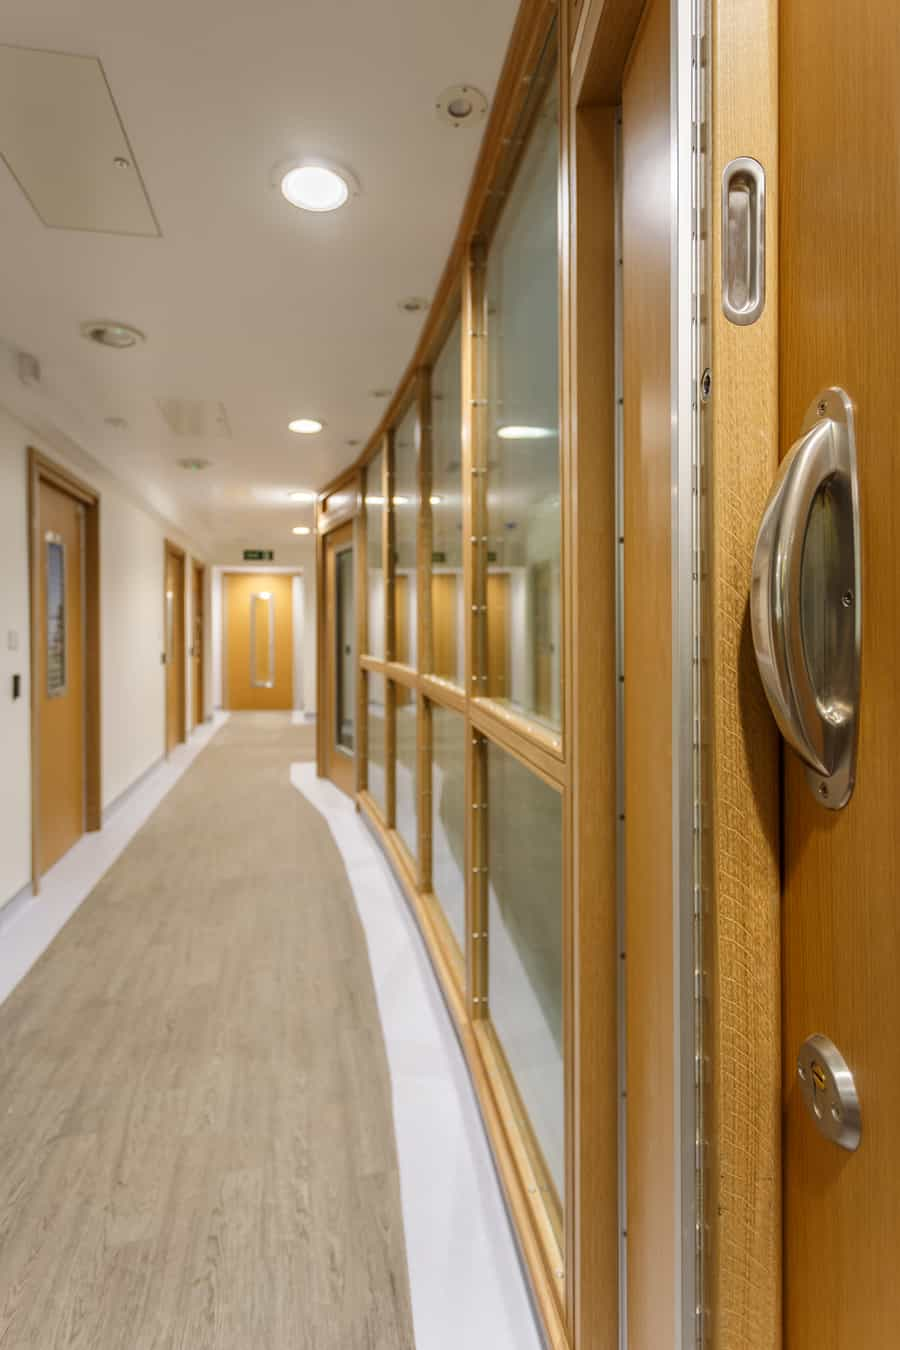 Kingsway anti-ligature doors installed in a secure hospital unit.jpg